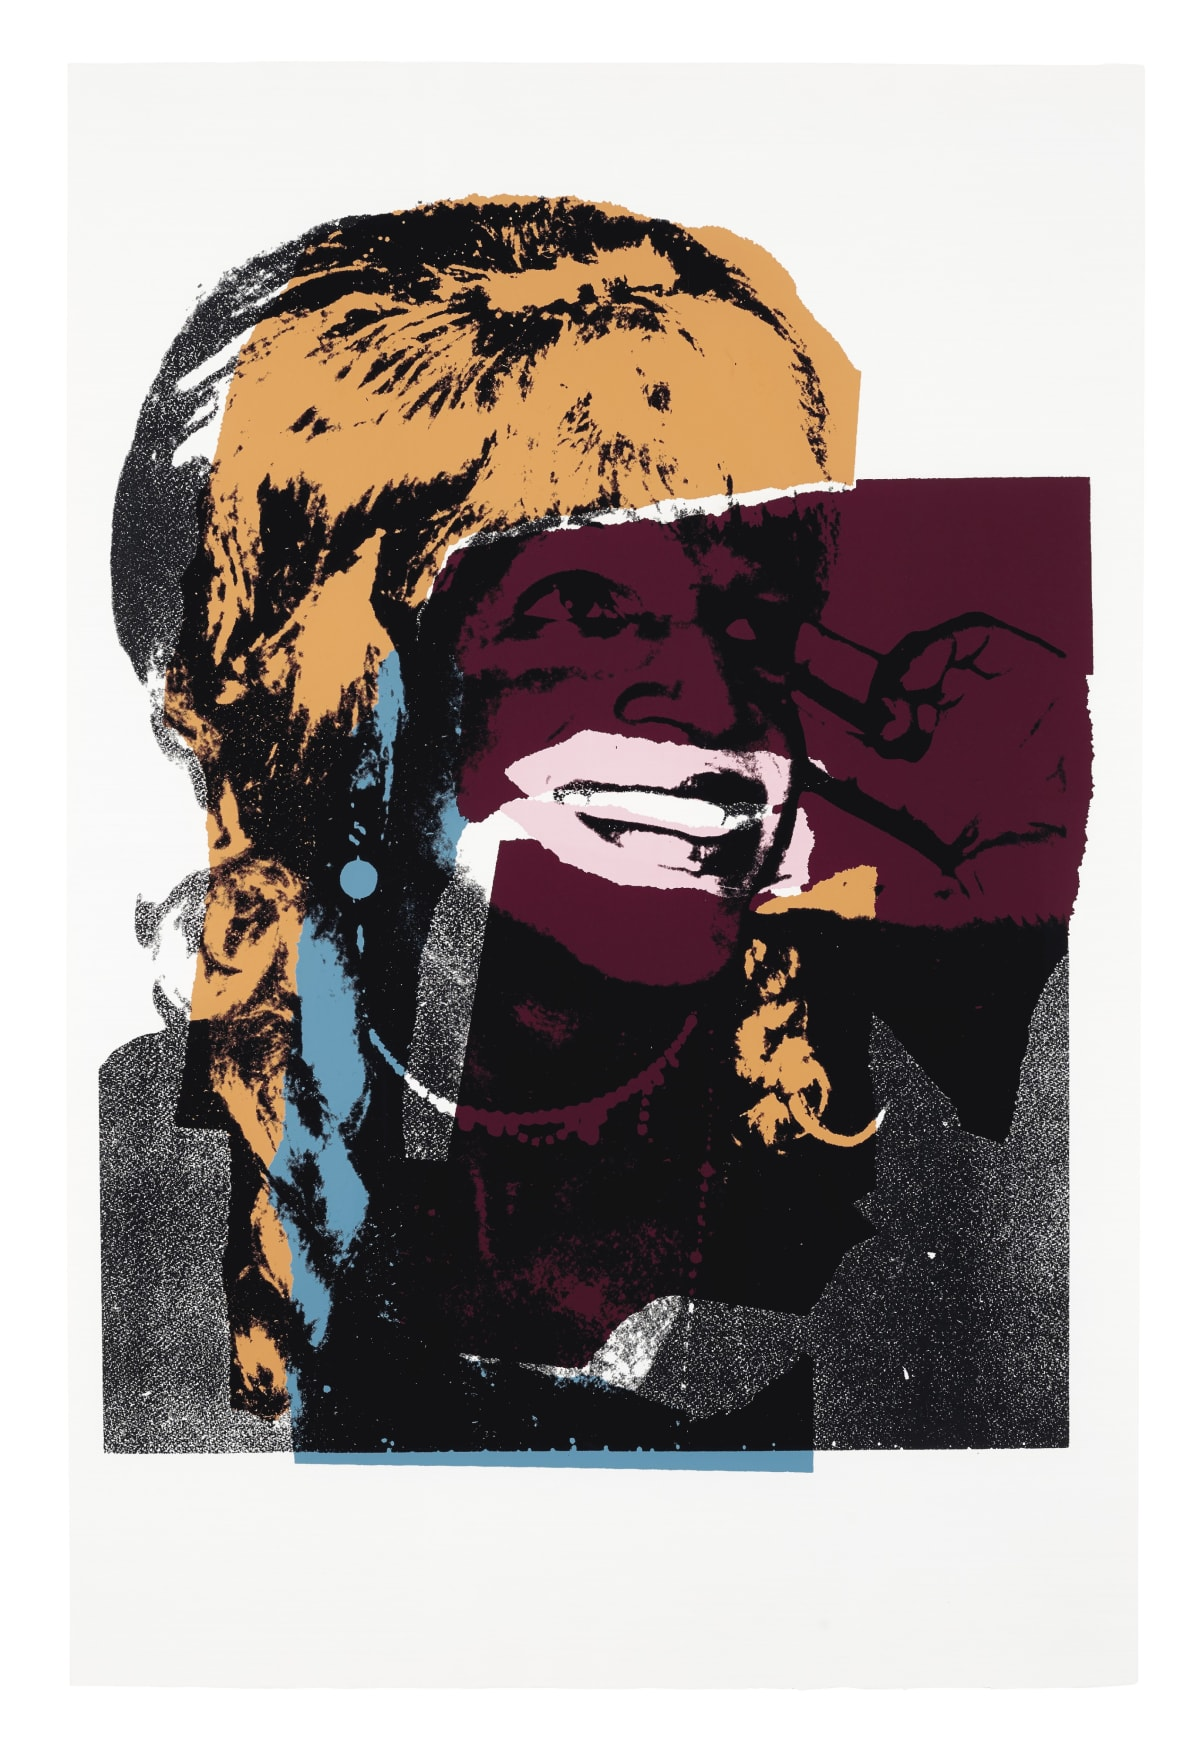 Ladies and Gentlemen, II.133, 1975, by Andy Warhol, Portfolio of Ten Screenprints from an edition of 125, at Coskun Fine Art